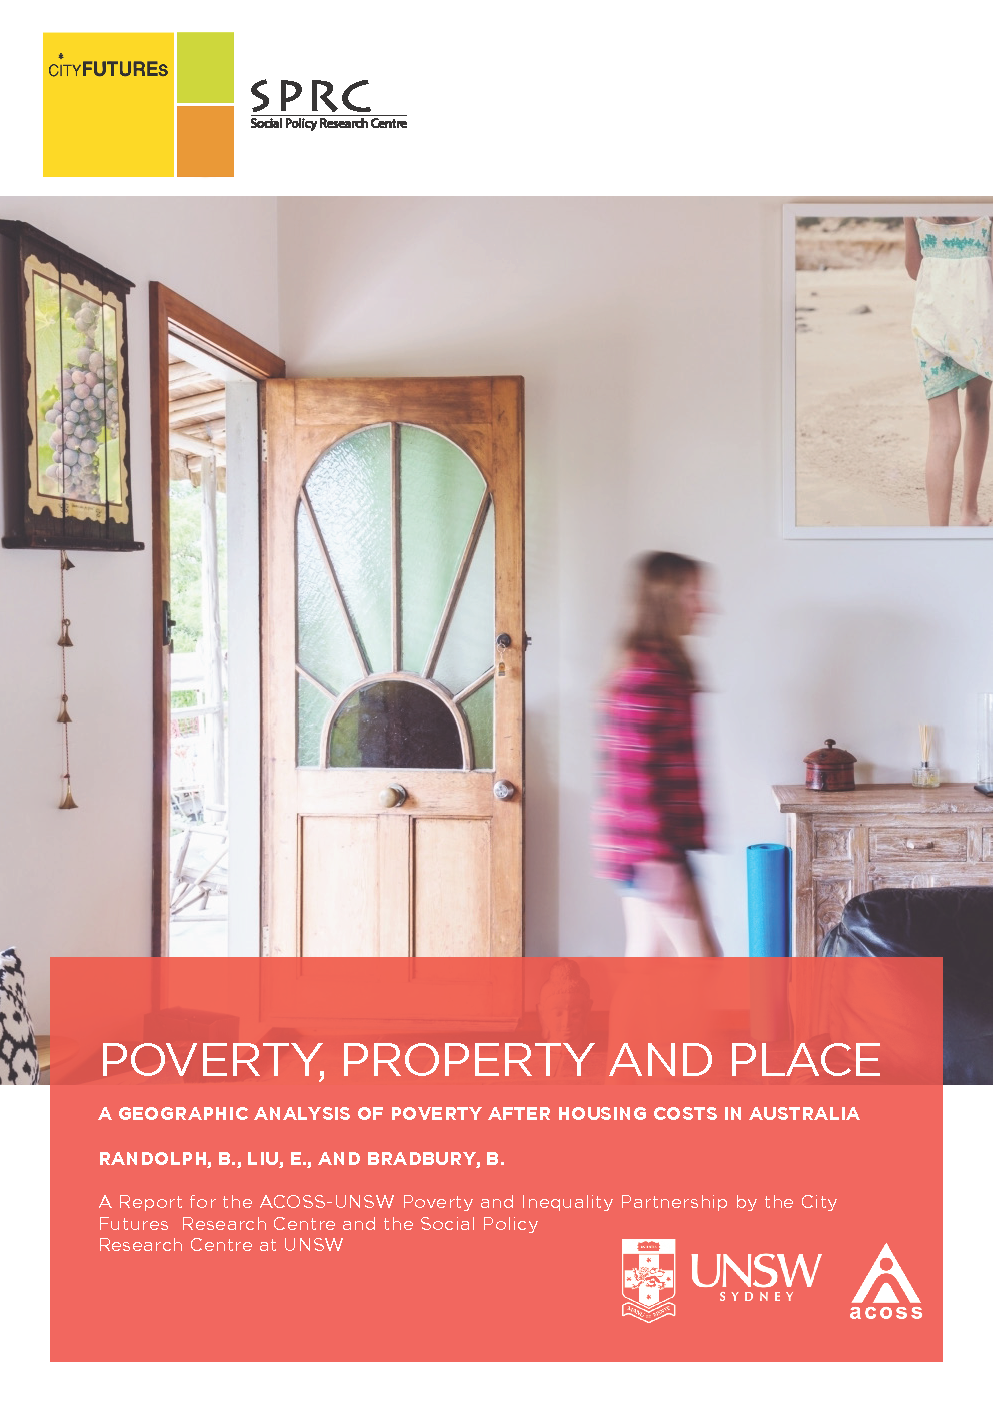 https://cityfutures.be.unsw.edu.au/media/images/Pages_from_Poverty-property-and-place.original.png